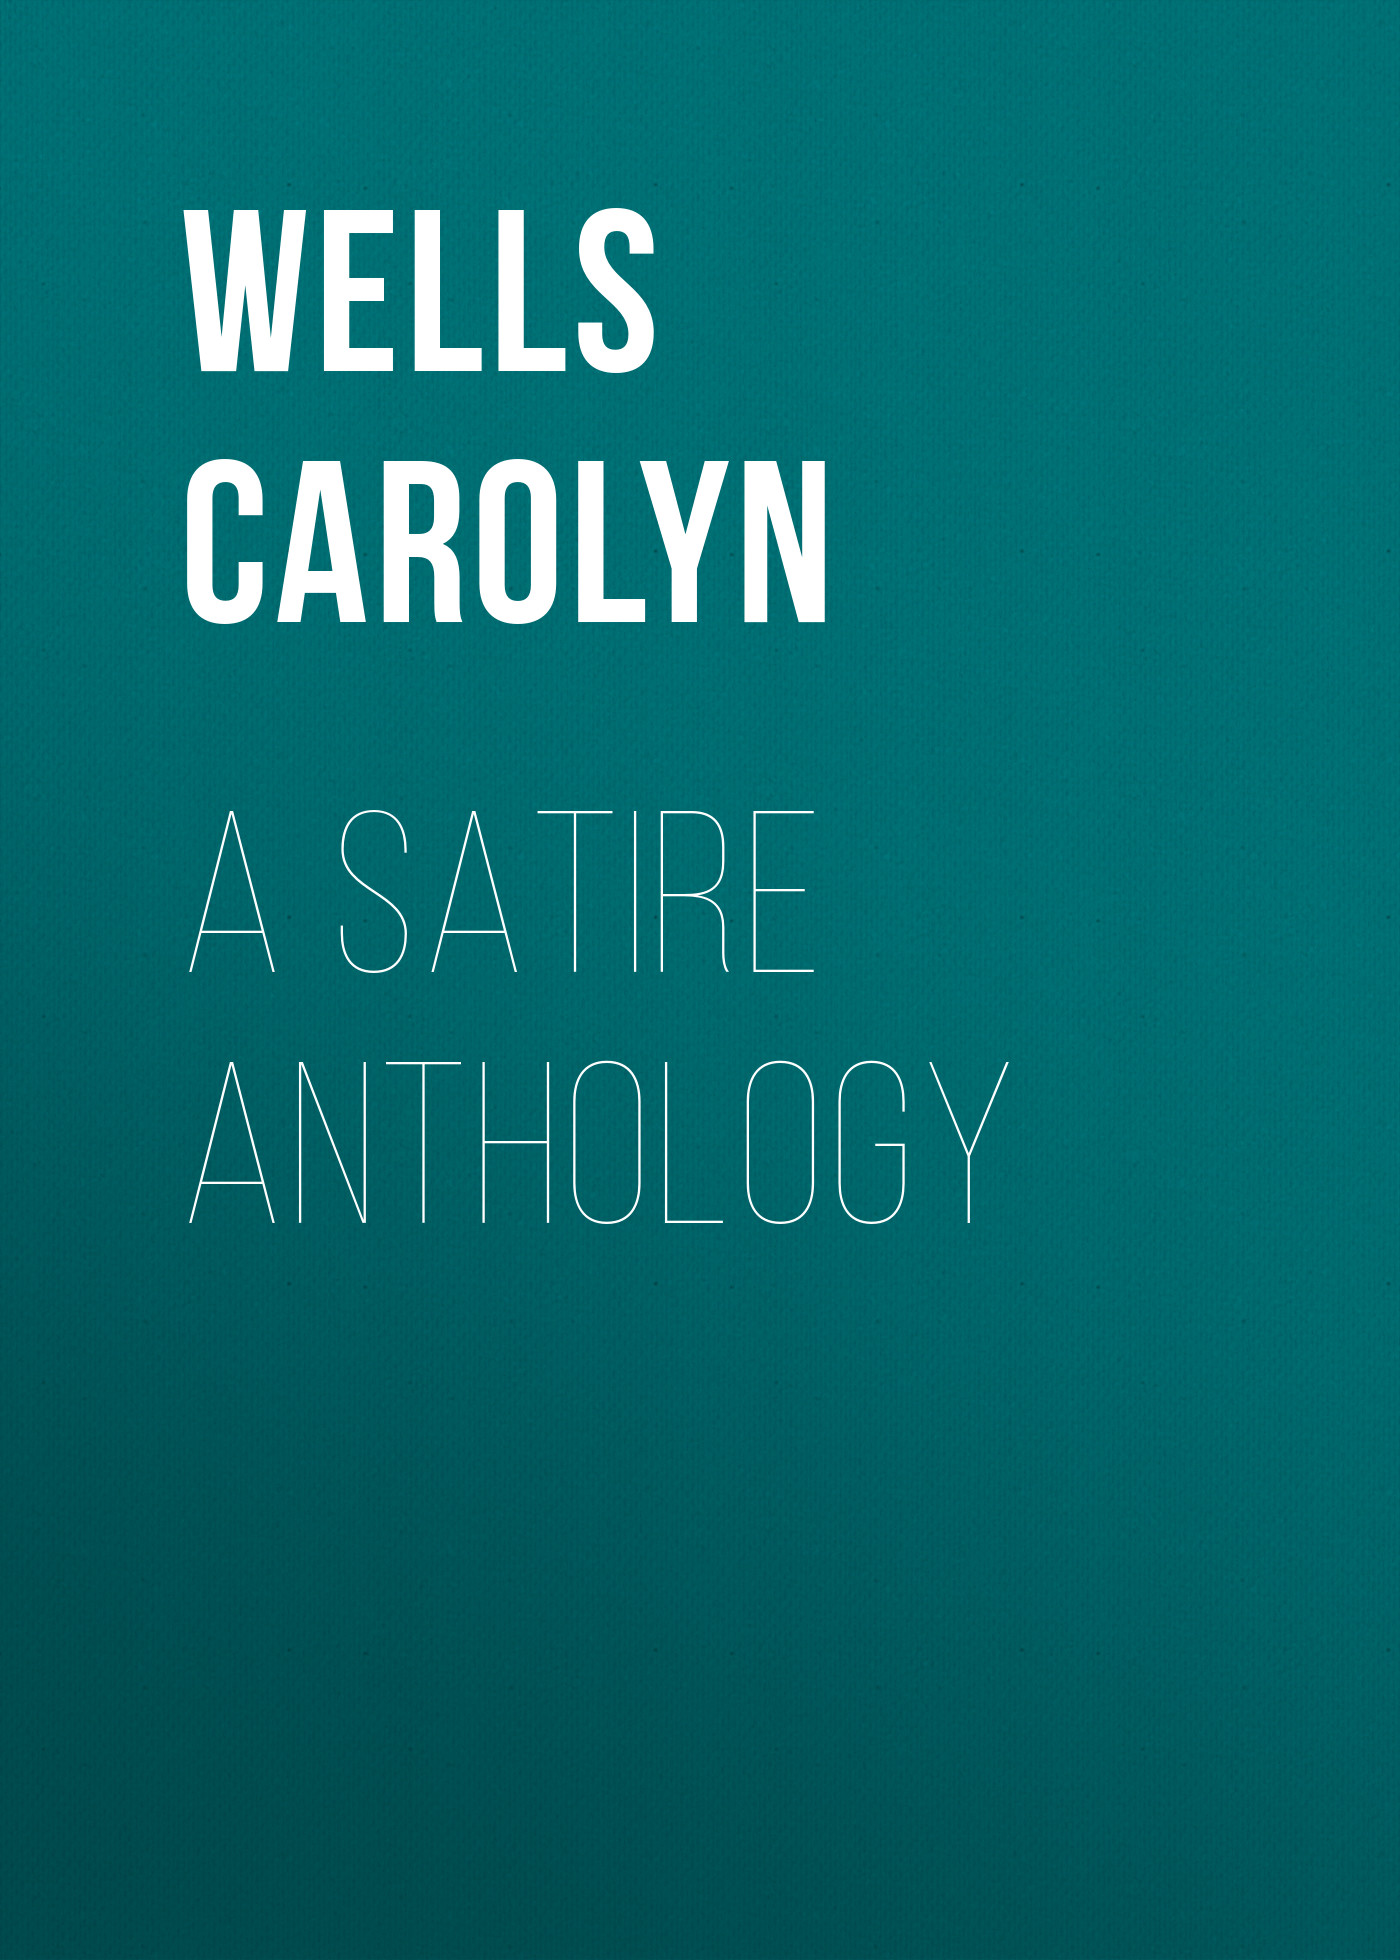 Wells Carolyn A Satire Anthology